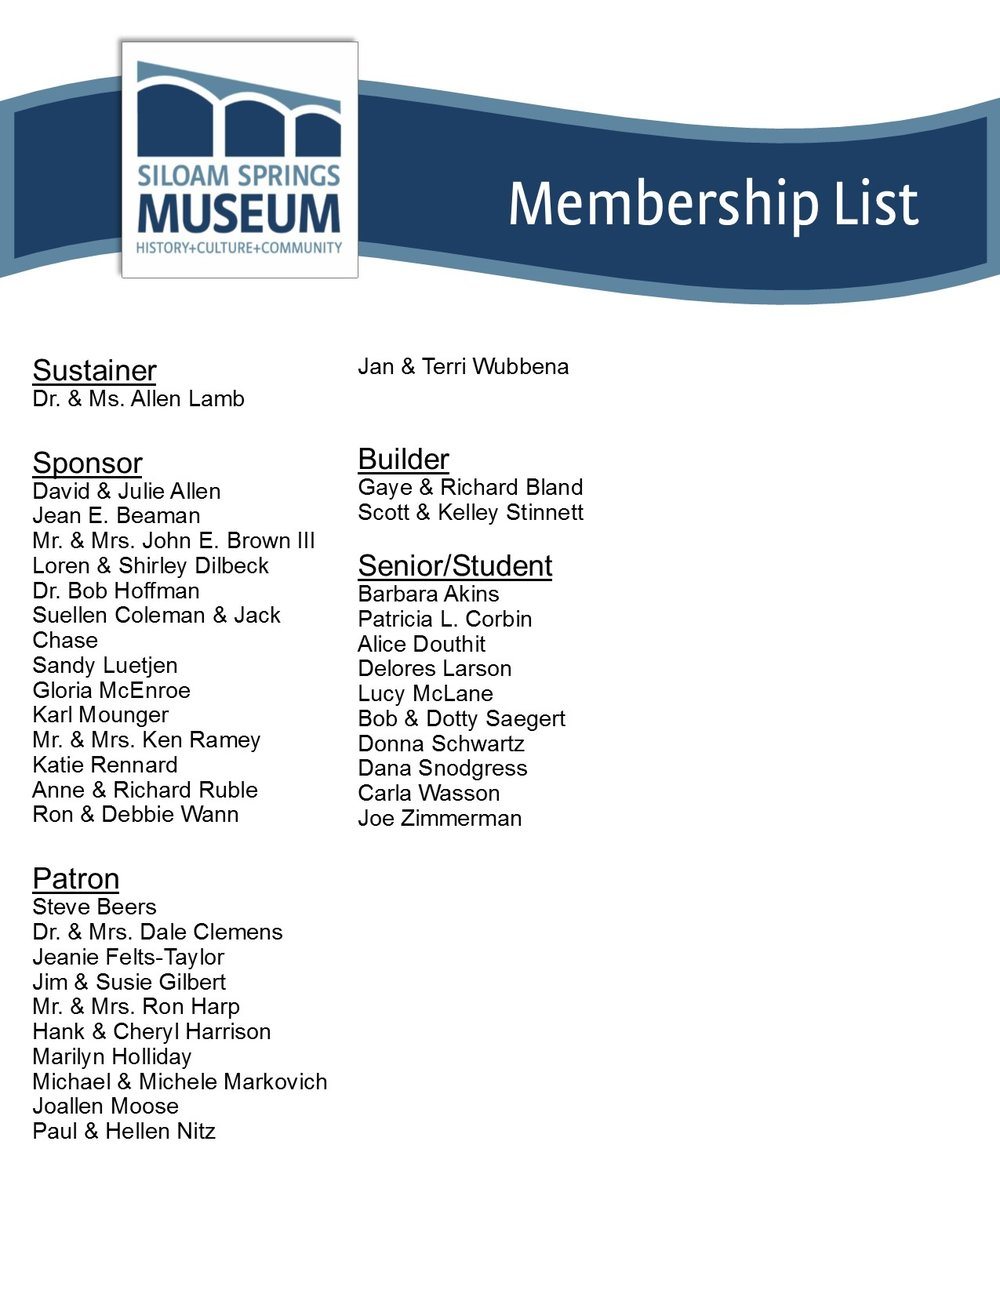 Membership List Current as of 09/26/17